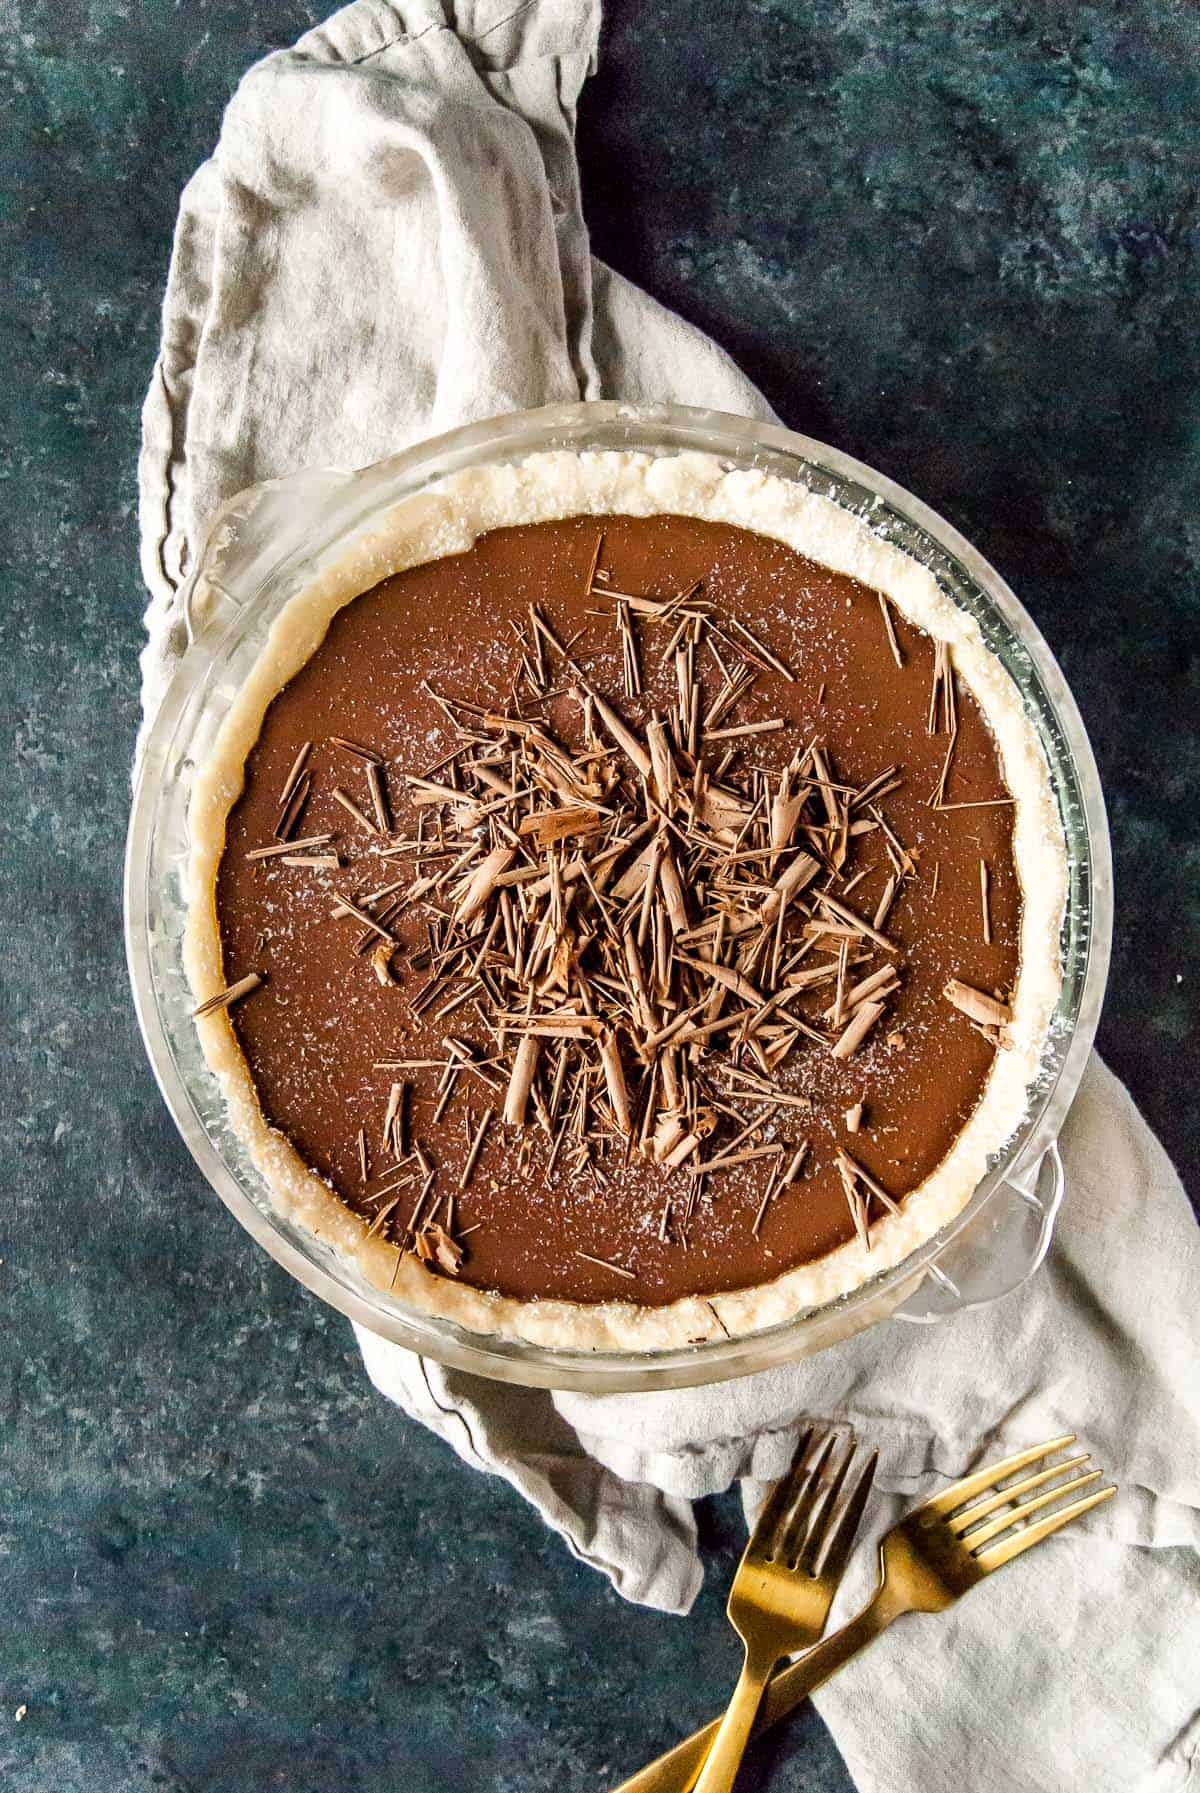 vegan chocolate cream pie with chocolate shavings